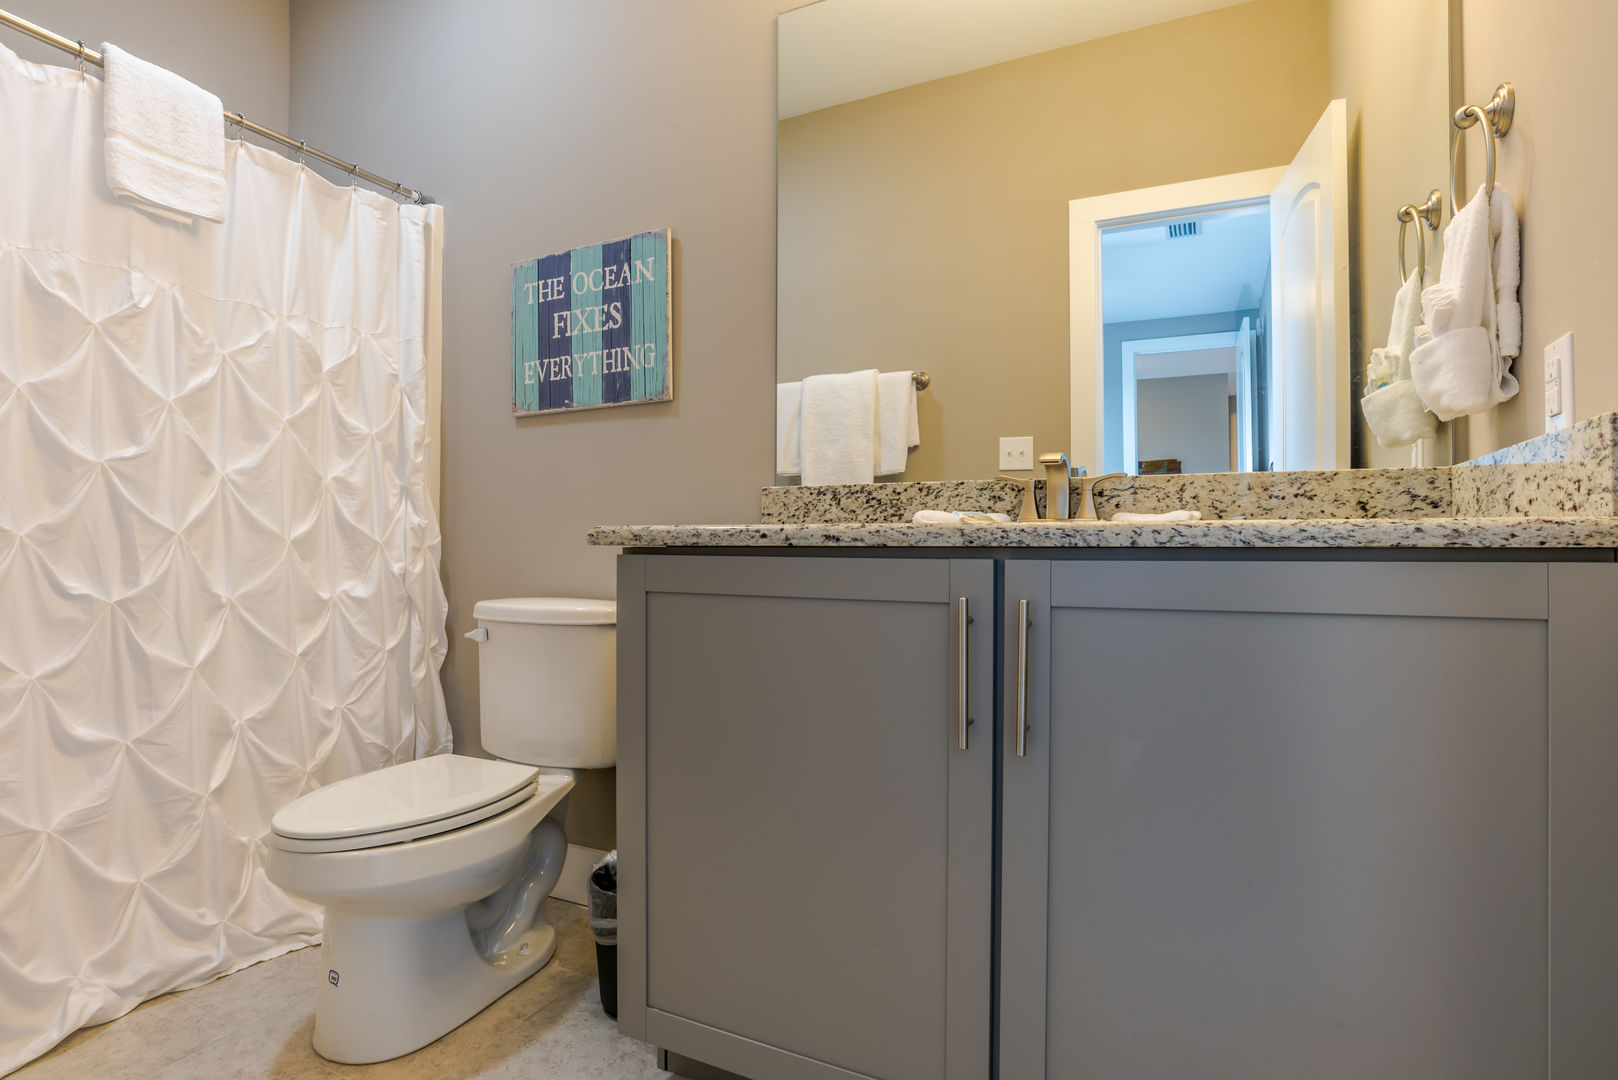 Second Guest Bathroom in our Fort Morgan, Alabama Vacation Home